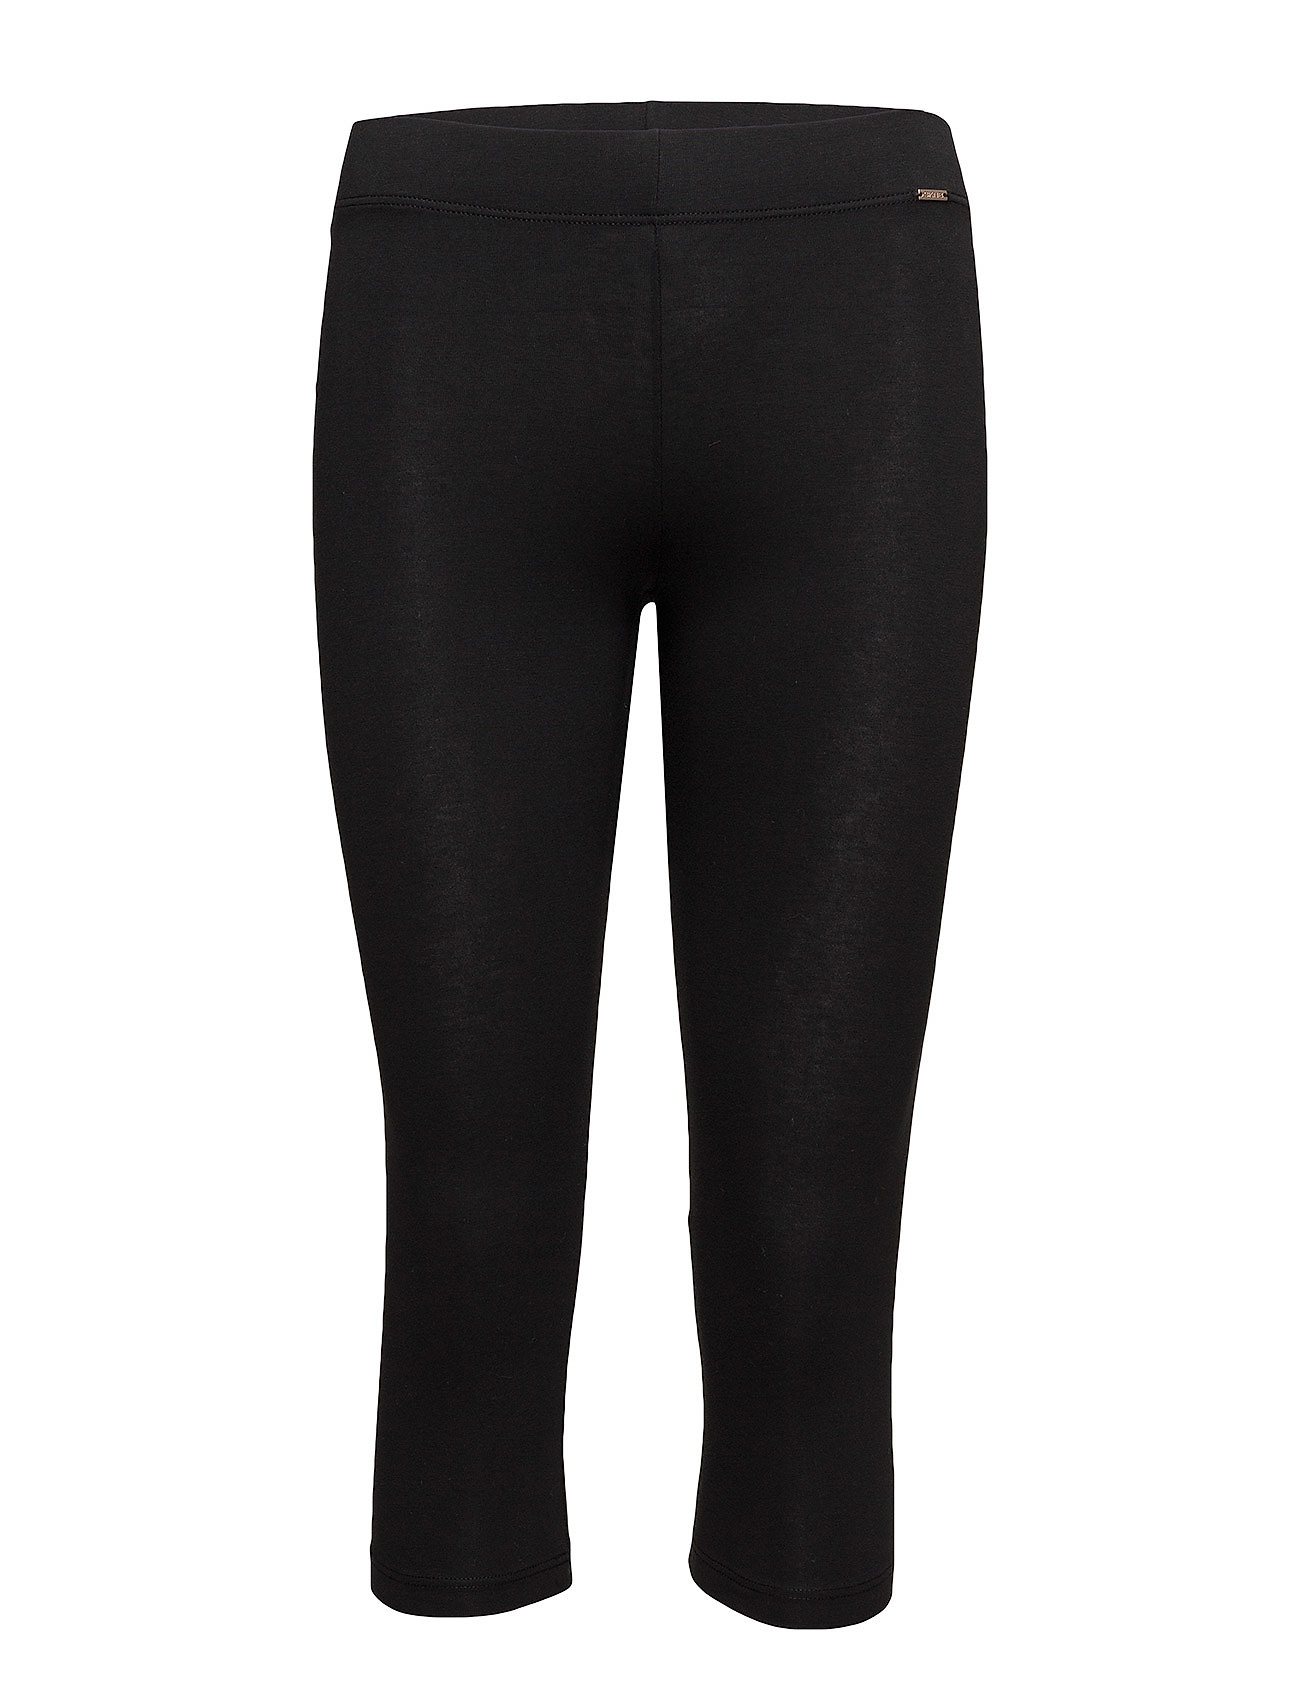 Skiny L. leggings 3/4 length - BLACK